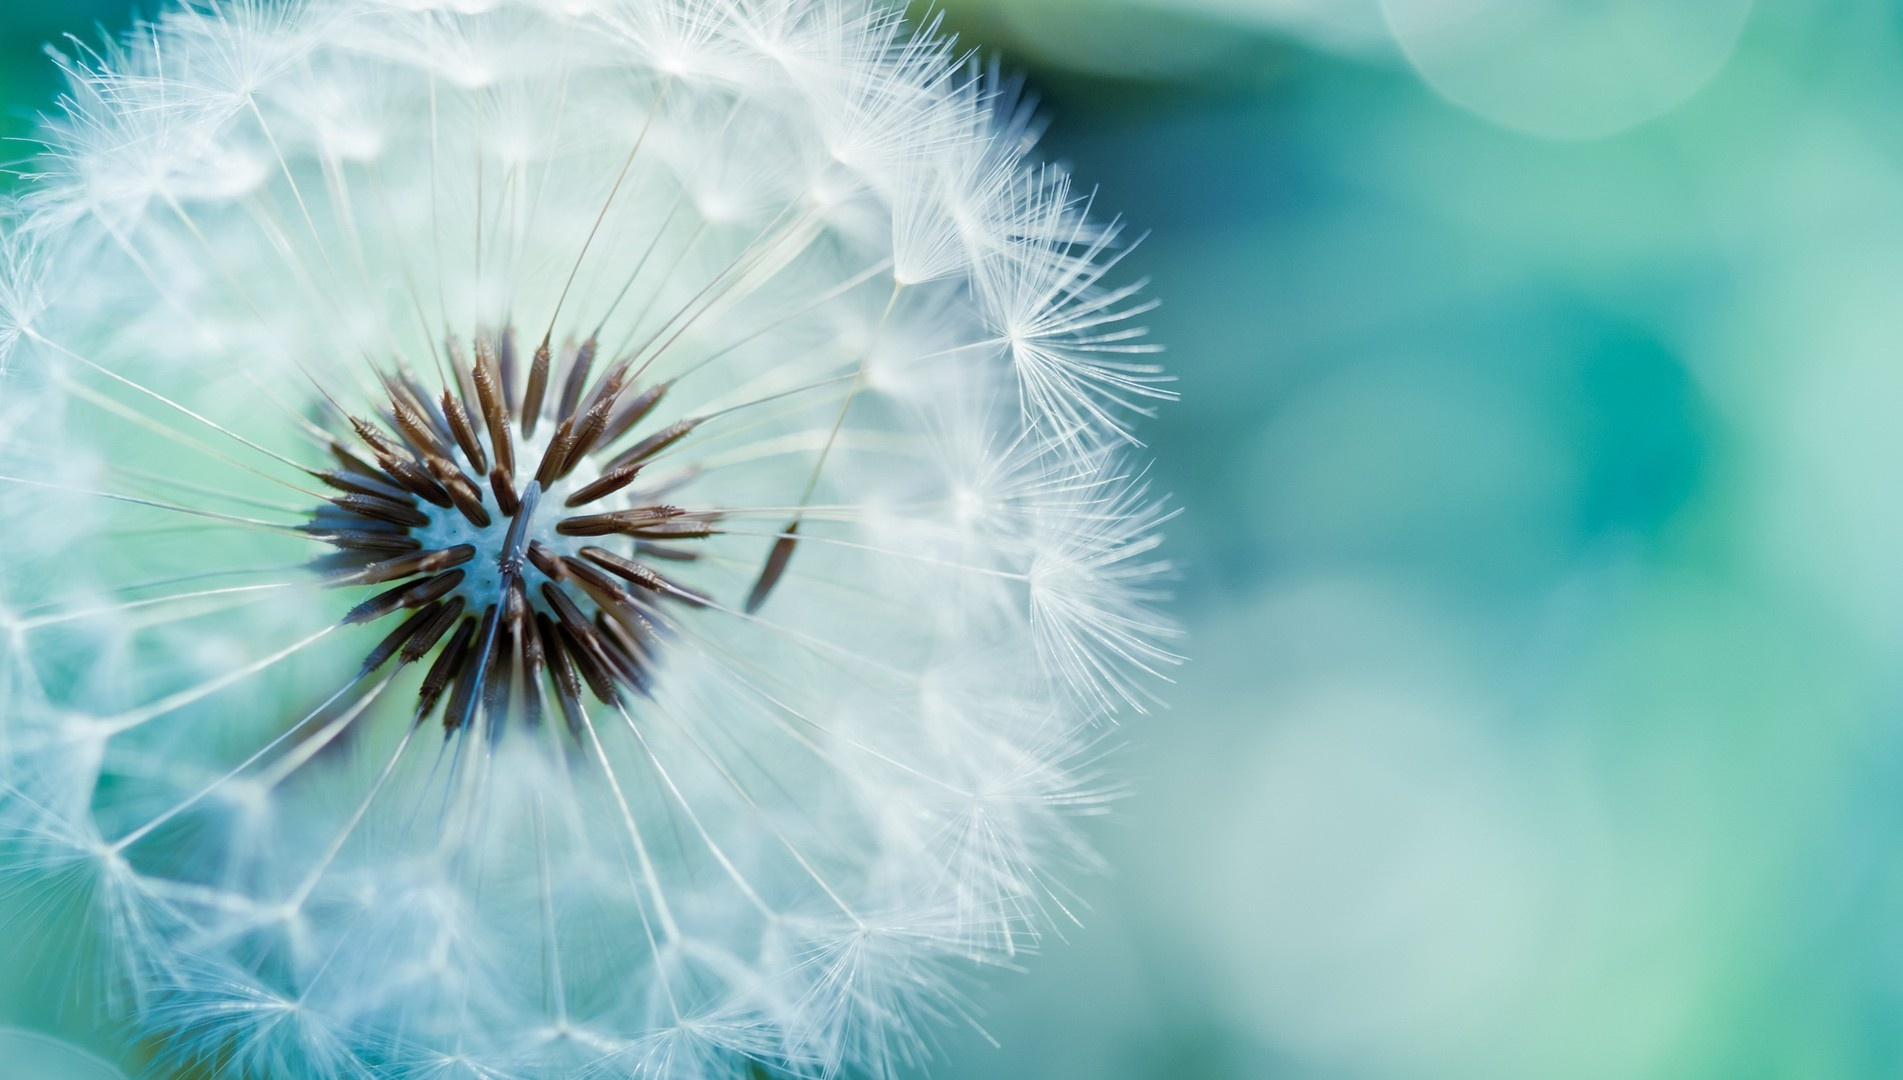 Dandelion Flowers Wallpapers HD Pictures One HD Wallpaper Pictures 1903x1080